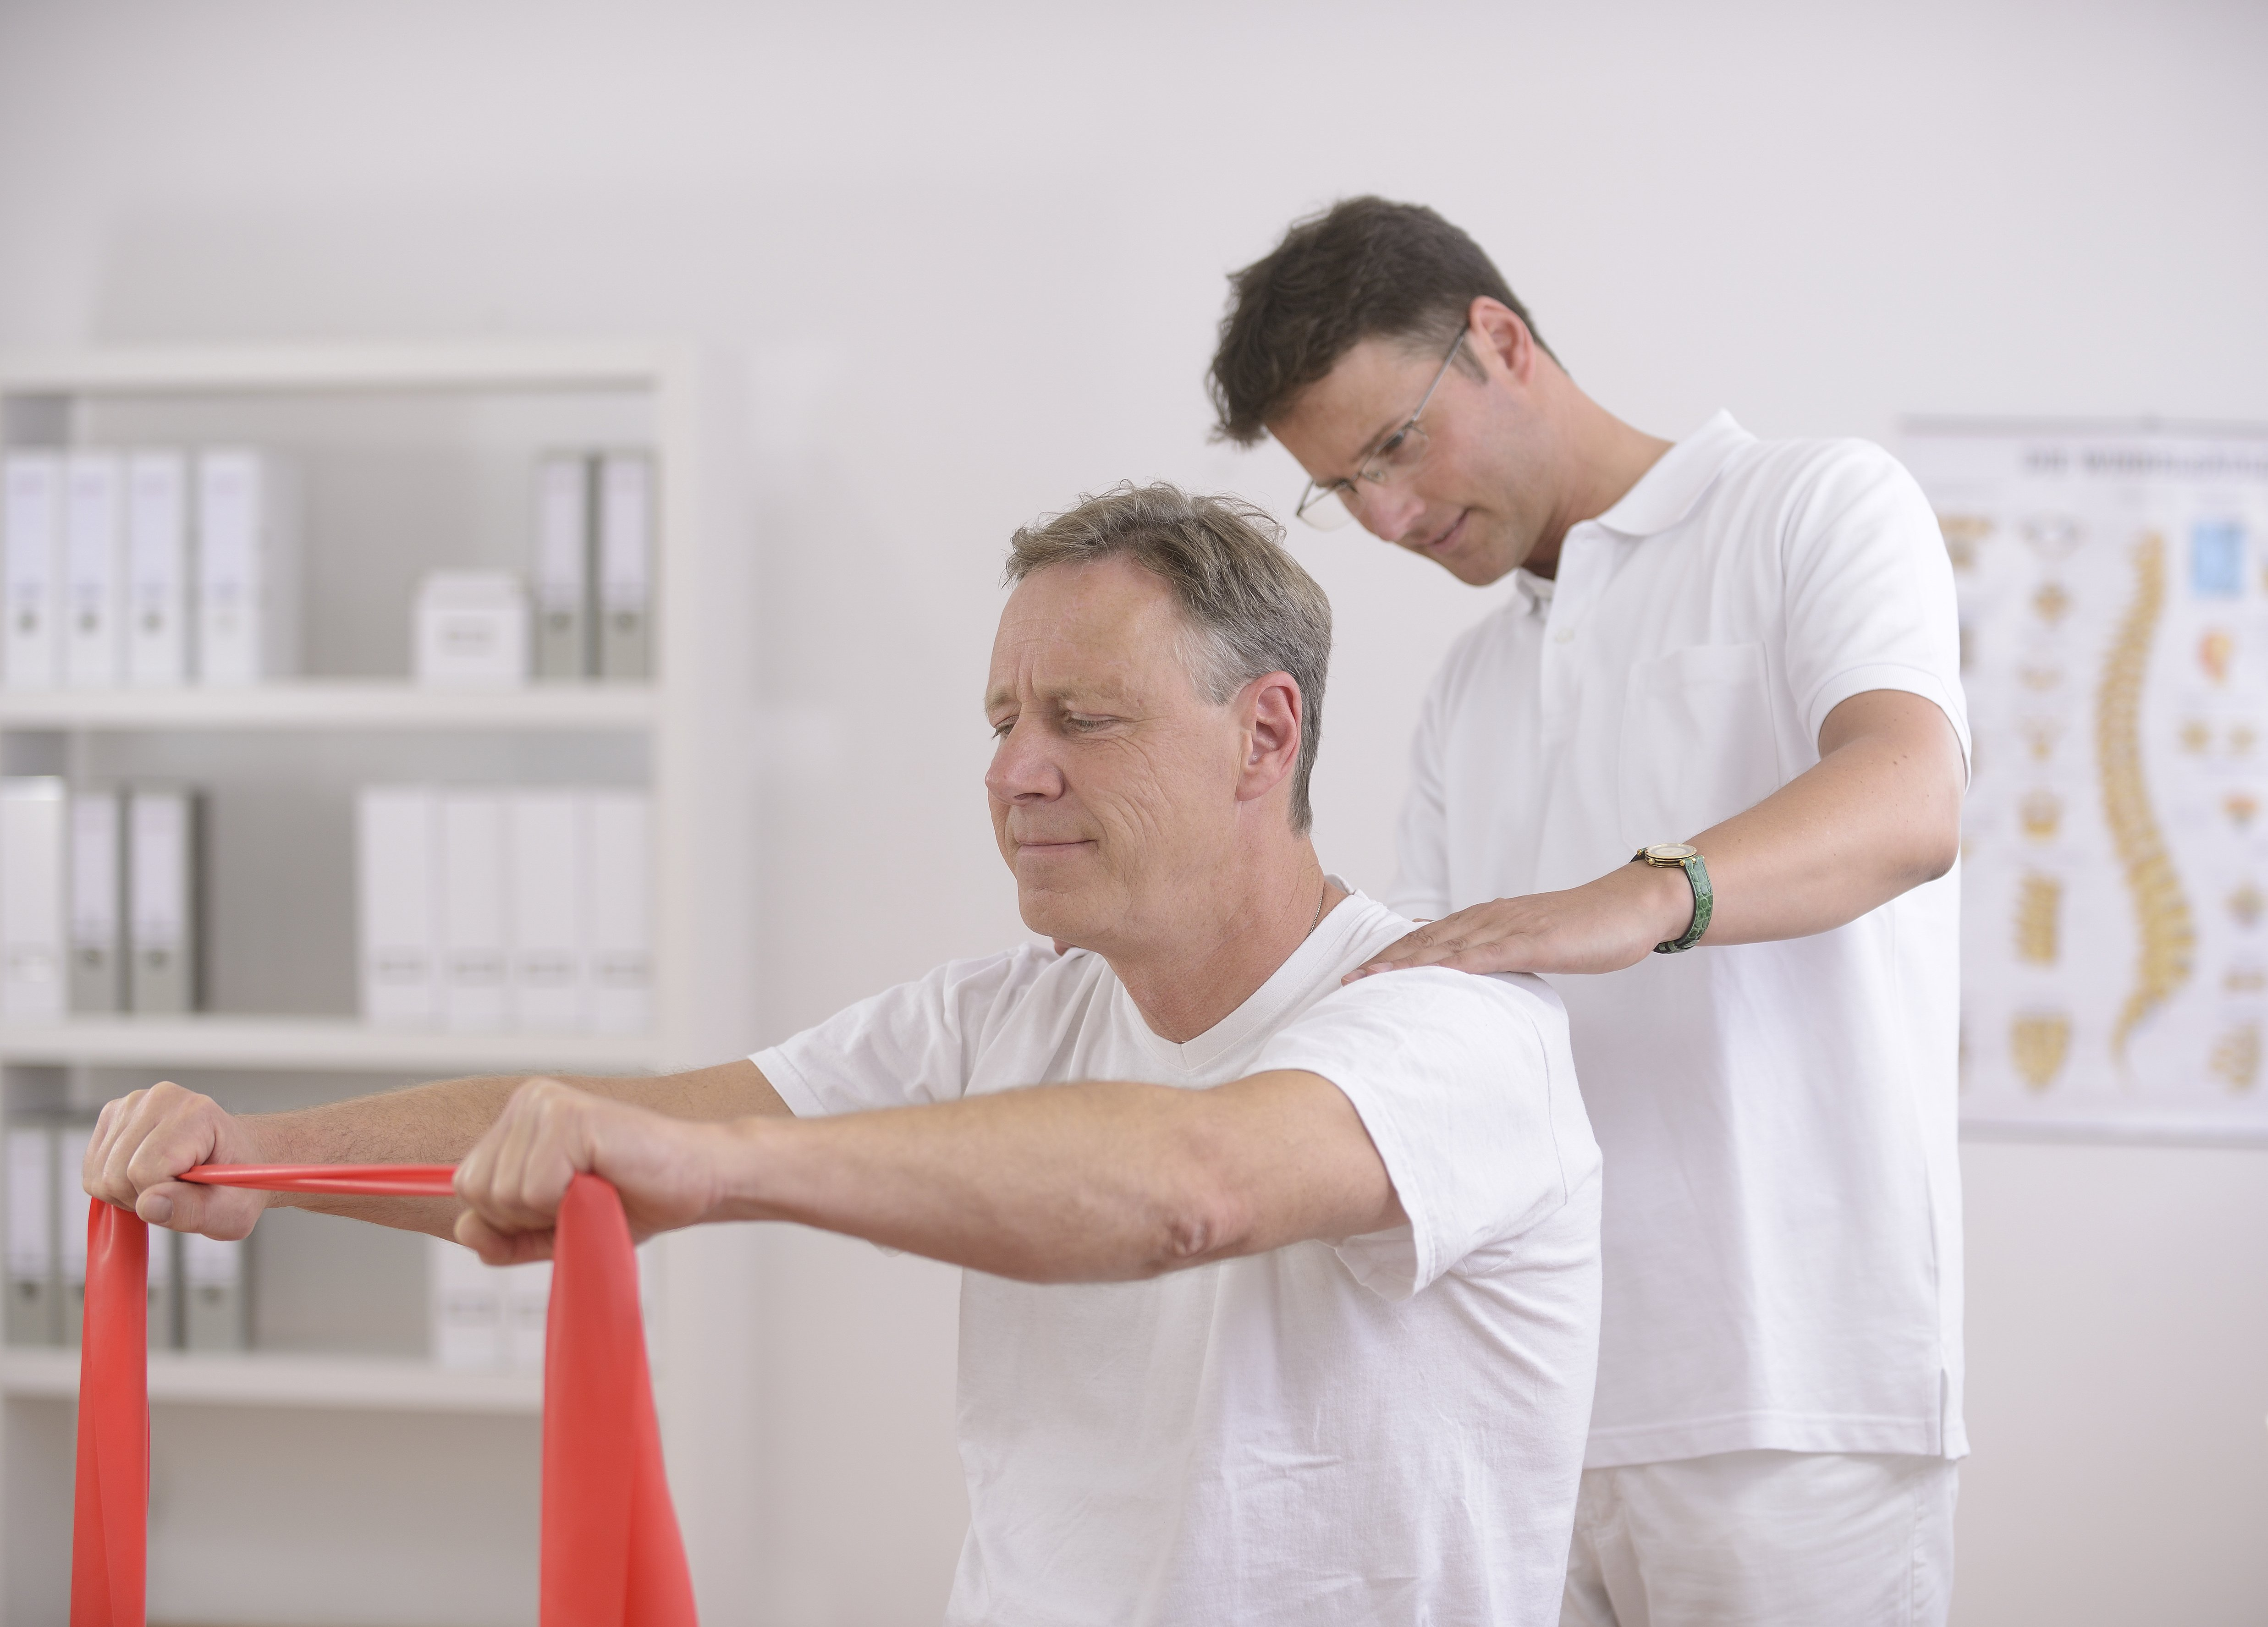 Chiropractor working with a patient